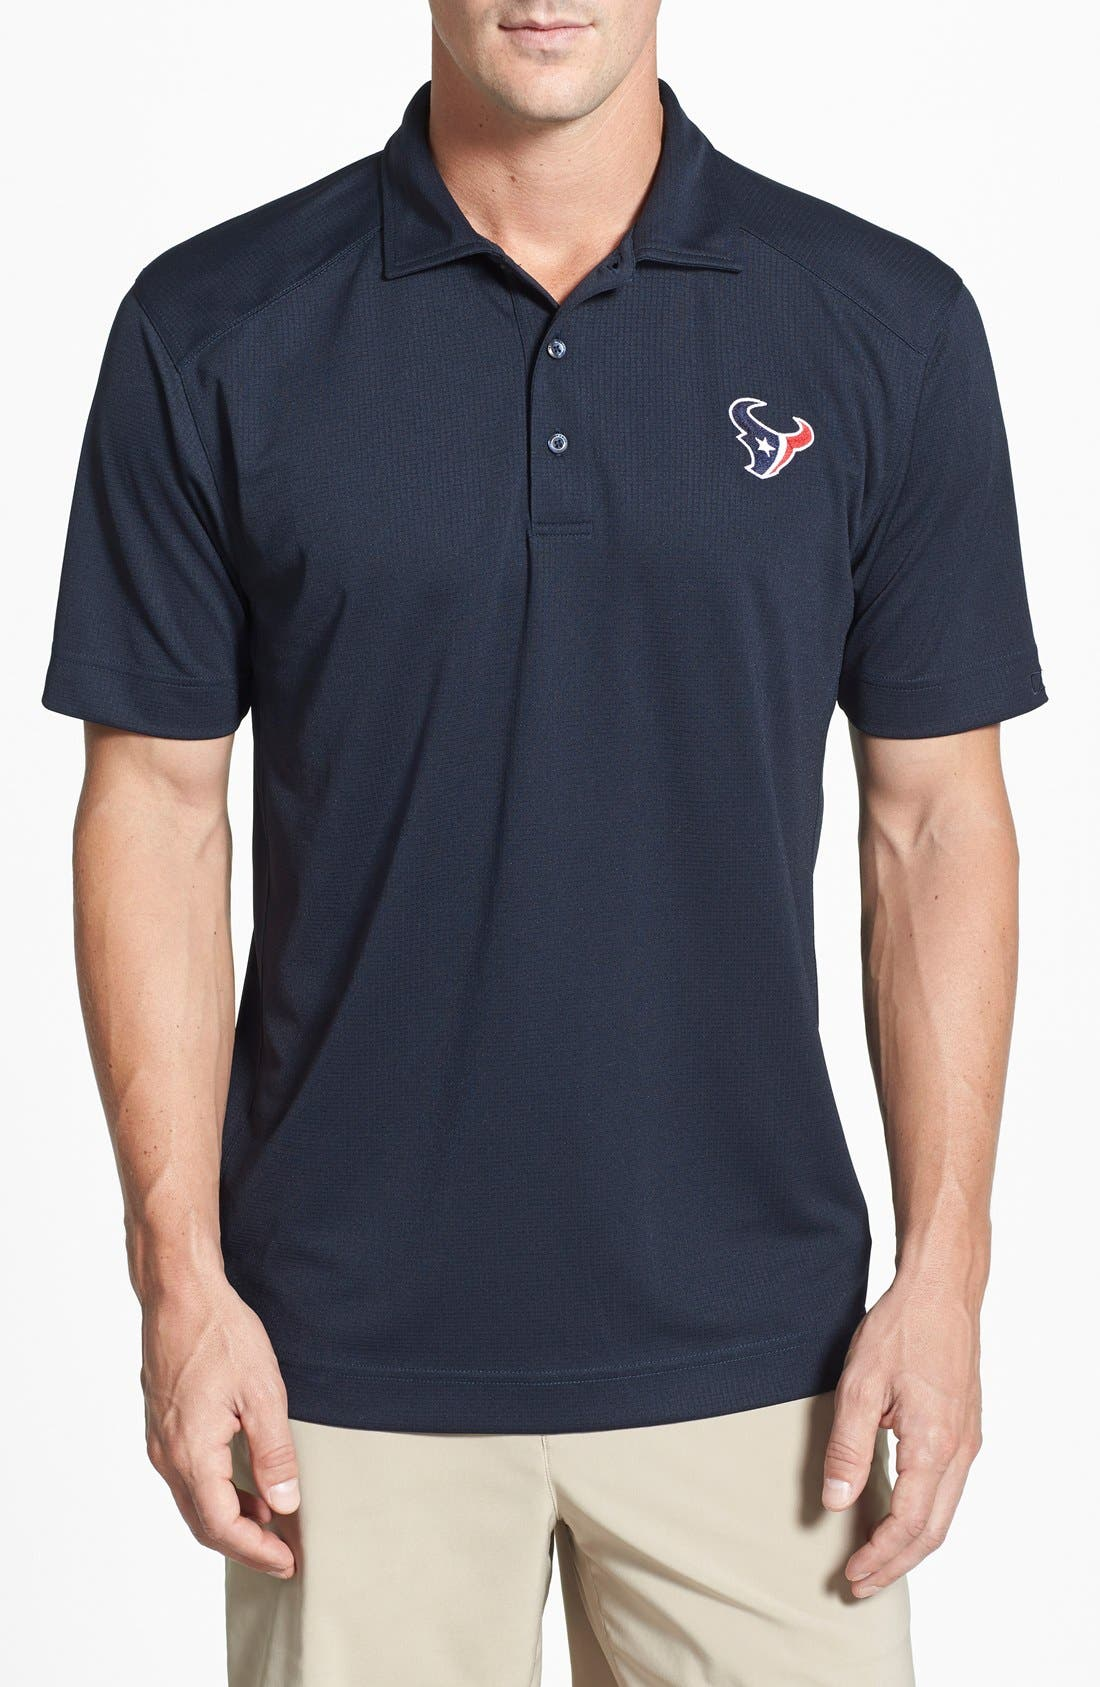 Cutter & Buck Houston Texans - Genre DryTec Moisture Wicking Polo